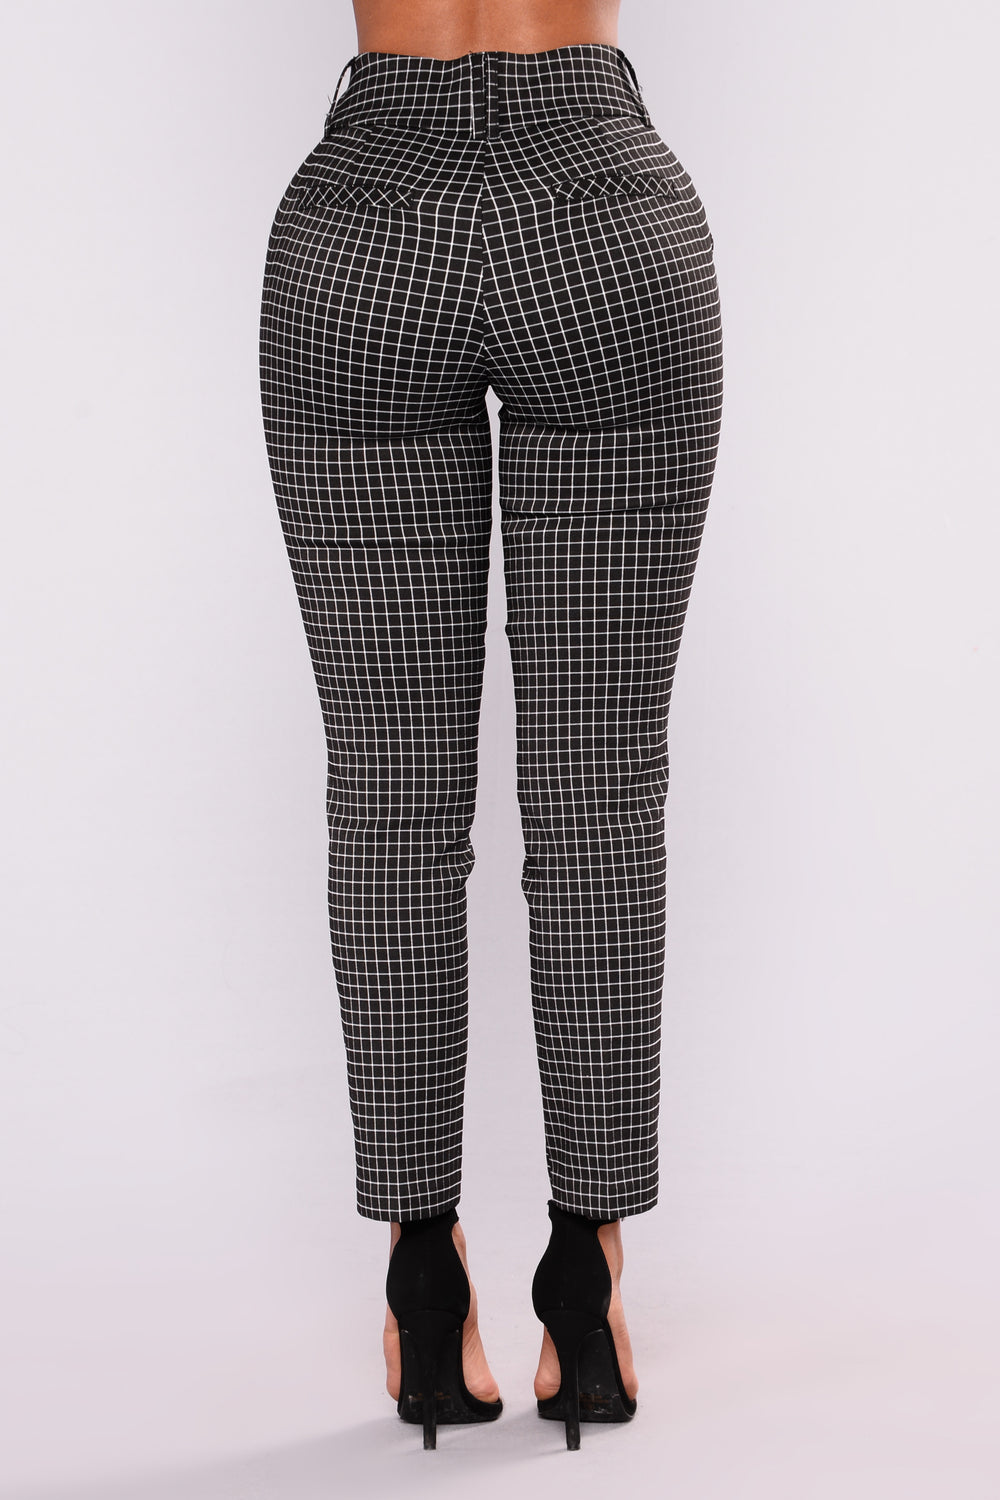 Jeanne Print Pants - Black/White